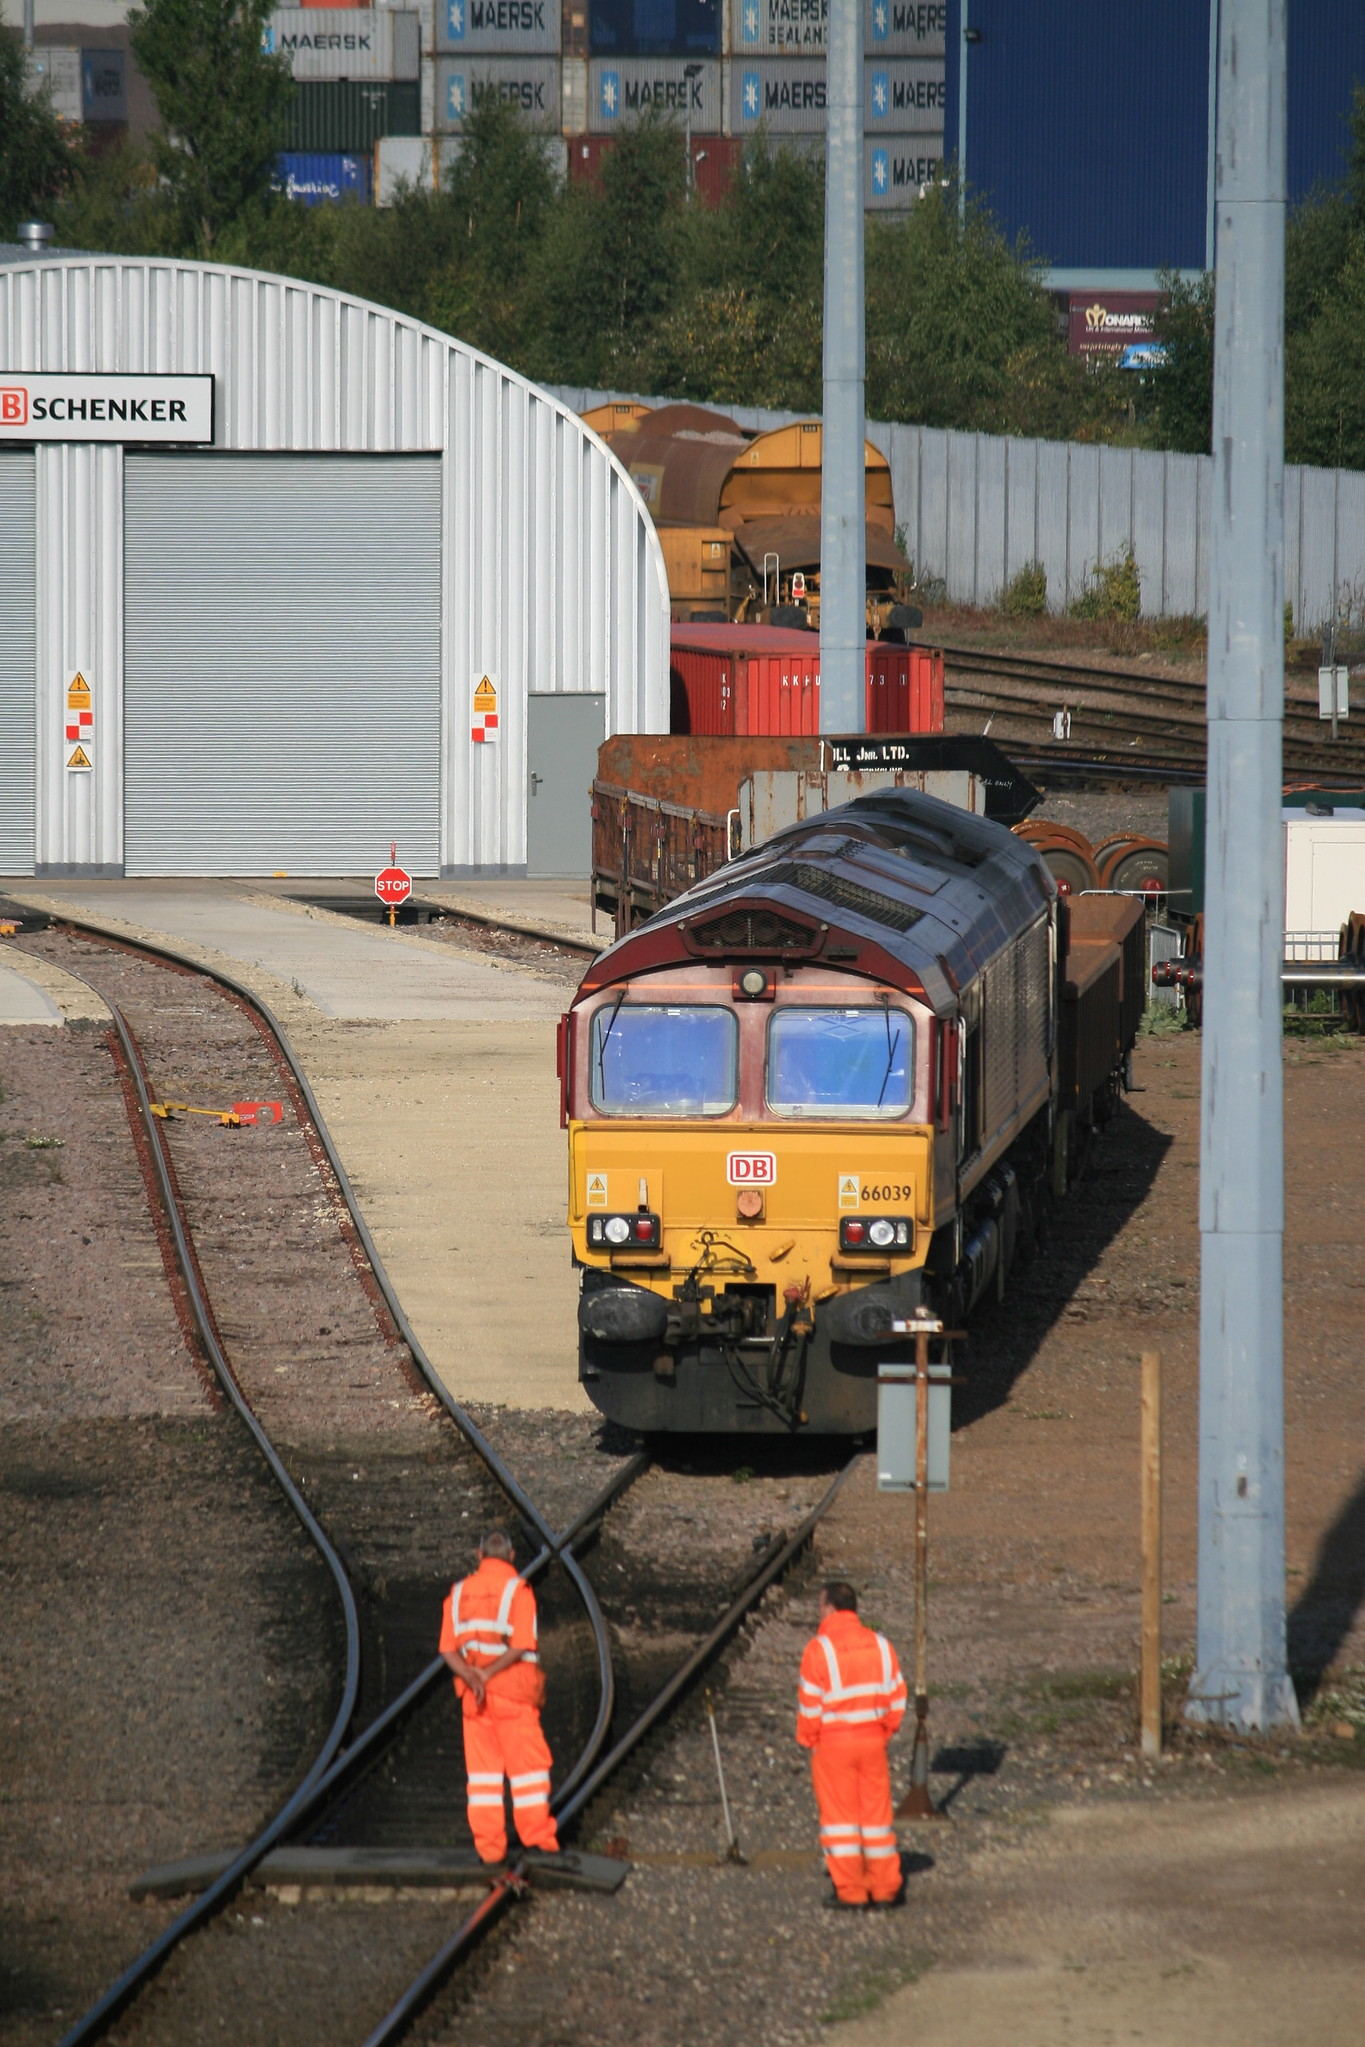 66039_Doncaster_20092015 (43)_DBS